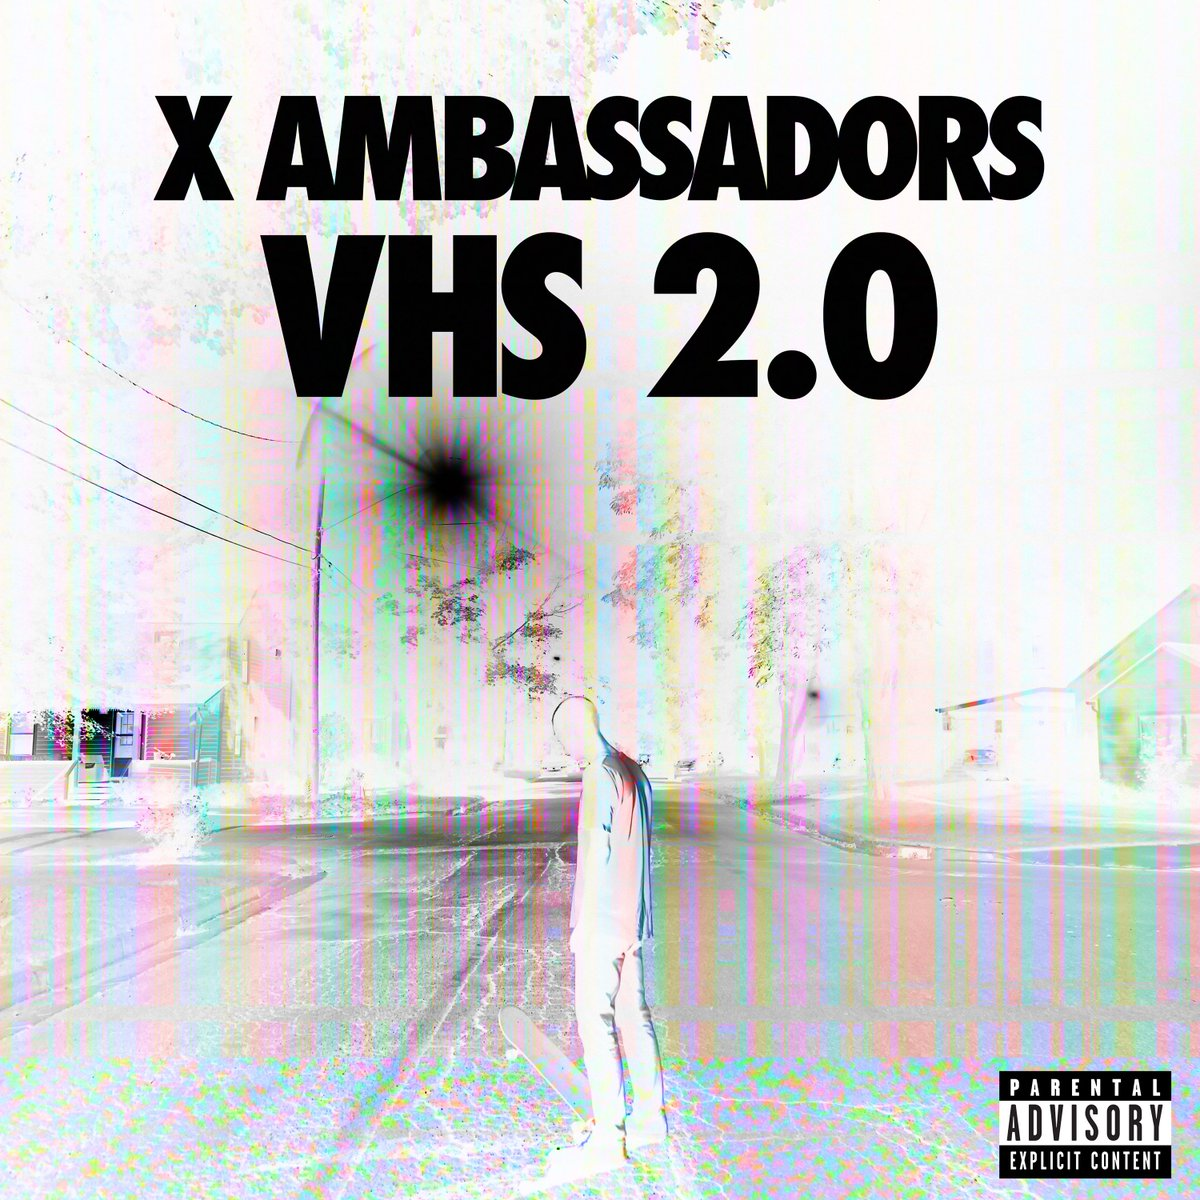 VHS 2.0 coming out Friday... Featuring 5 new unreleased songs